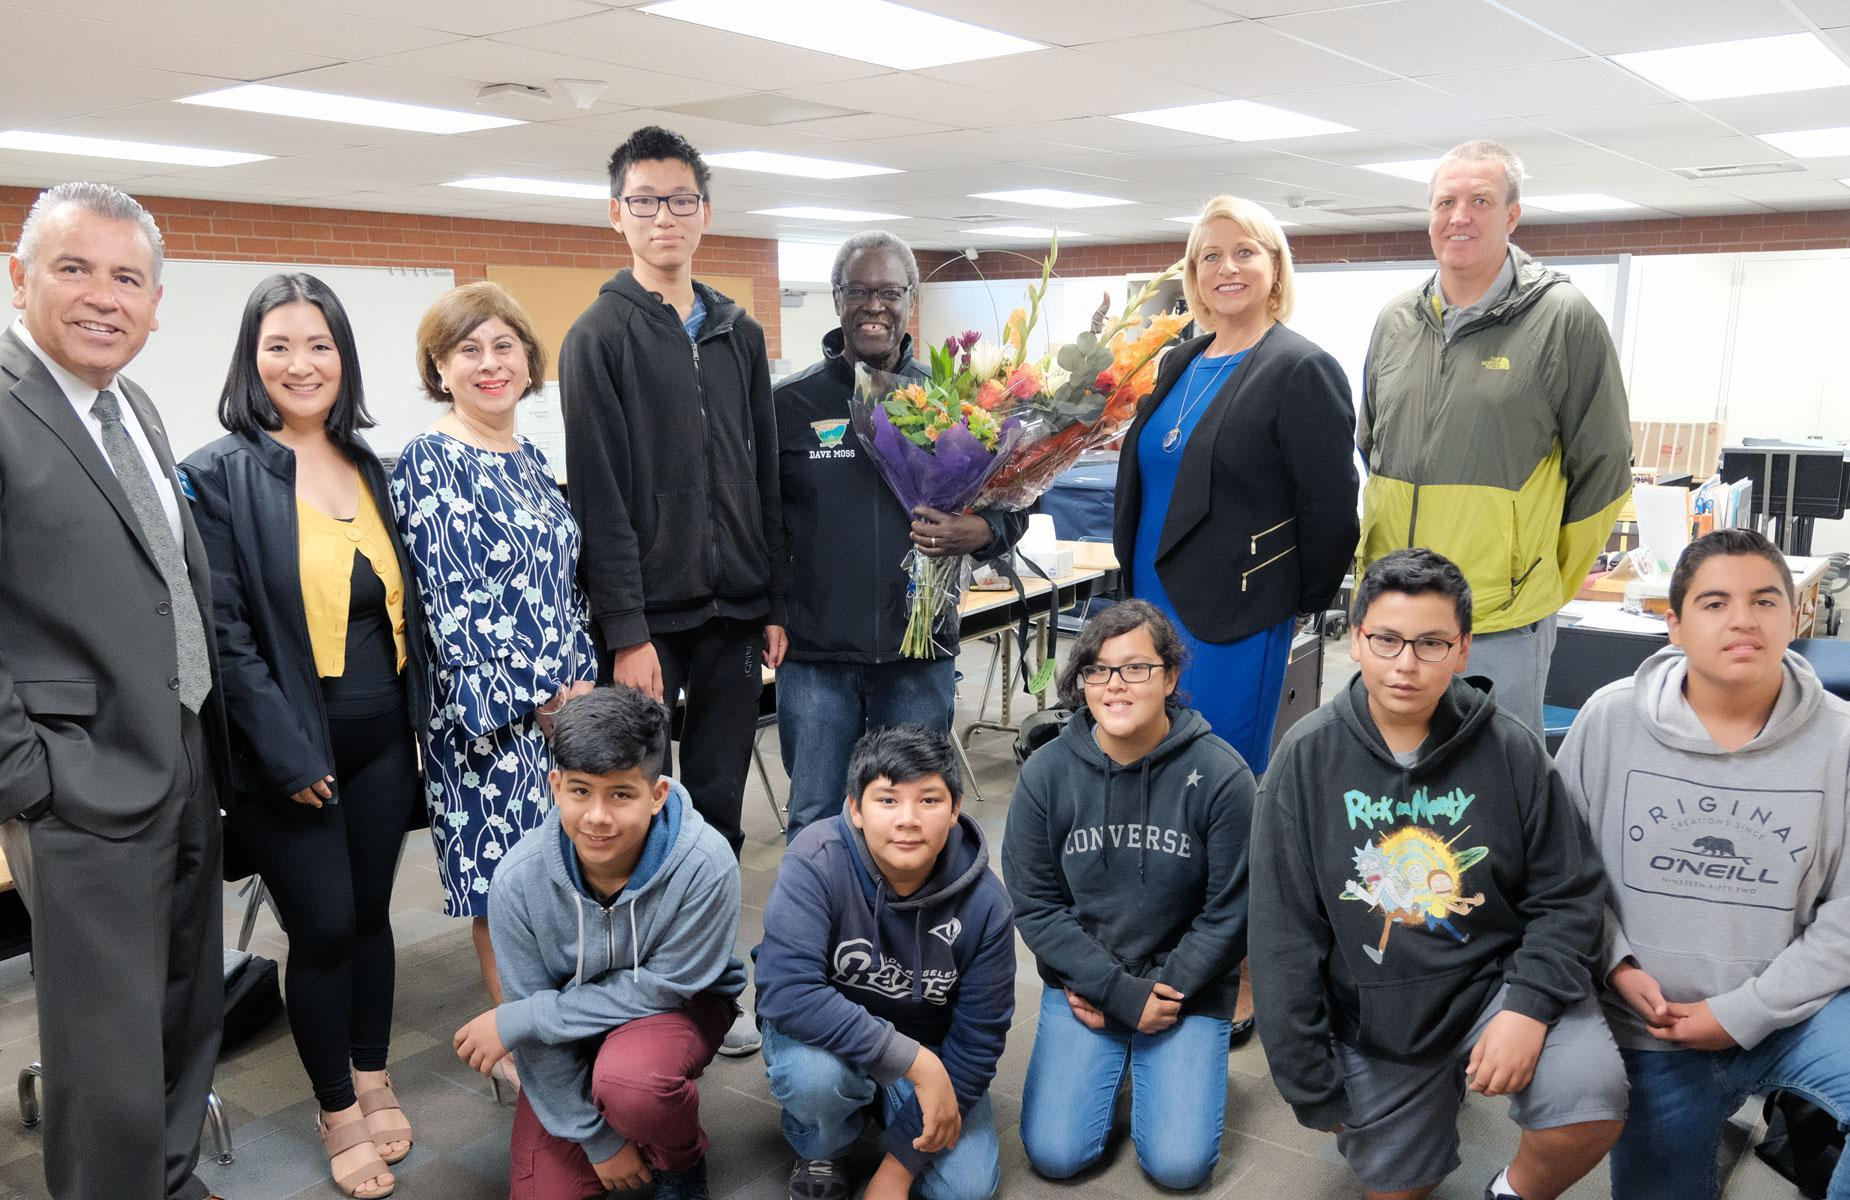 Please join us in congratulating the #PUSD #2019TeacheroftheYear! David Moss has been teaching #Music and #Band at Fremont Academy of Engineering & Design! We #Honor you today for the difference you make for our students! Mr. Moss is truly an inspiration to us all. #Proud2bepusd